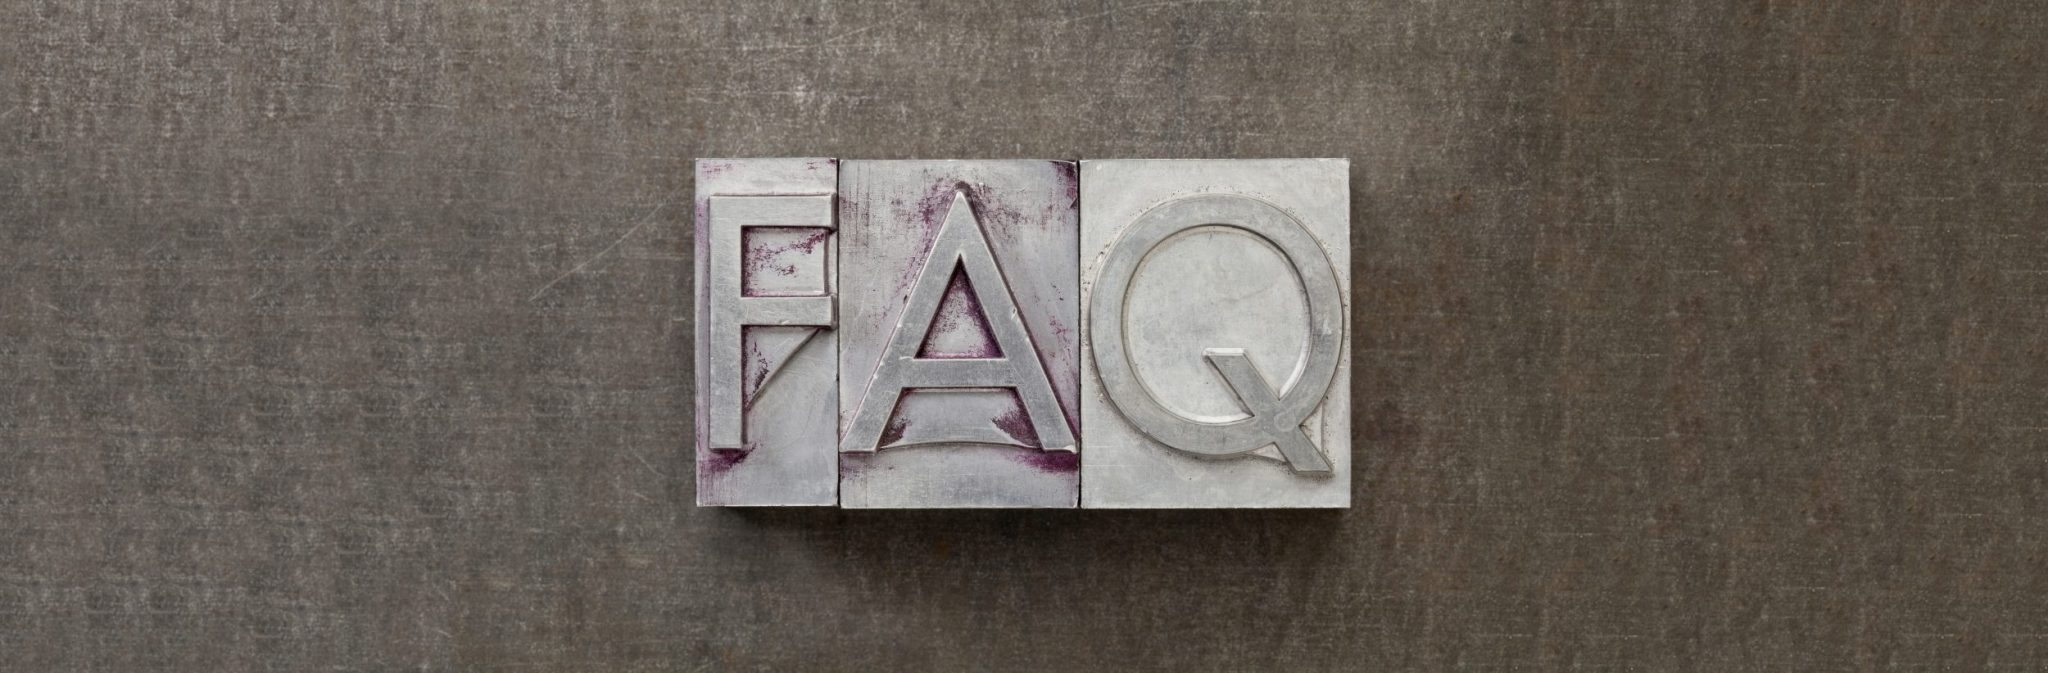 Frequently asked questions at Soublis Psychological Associates